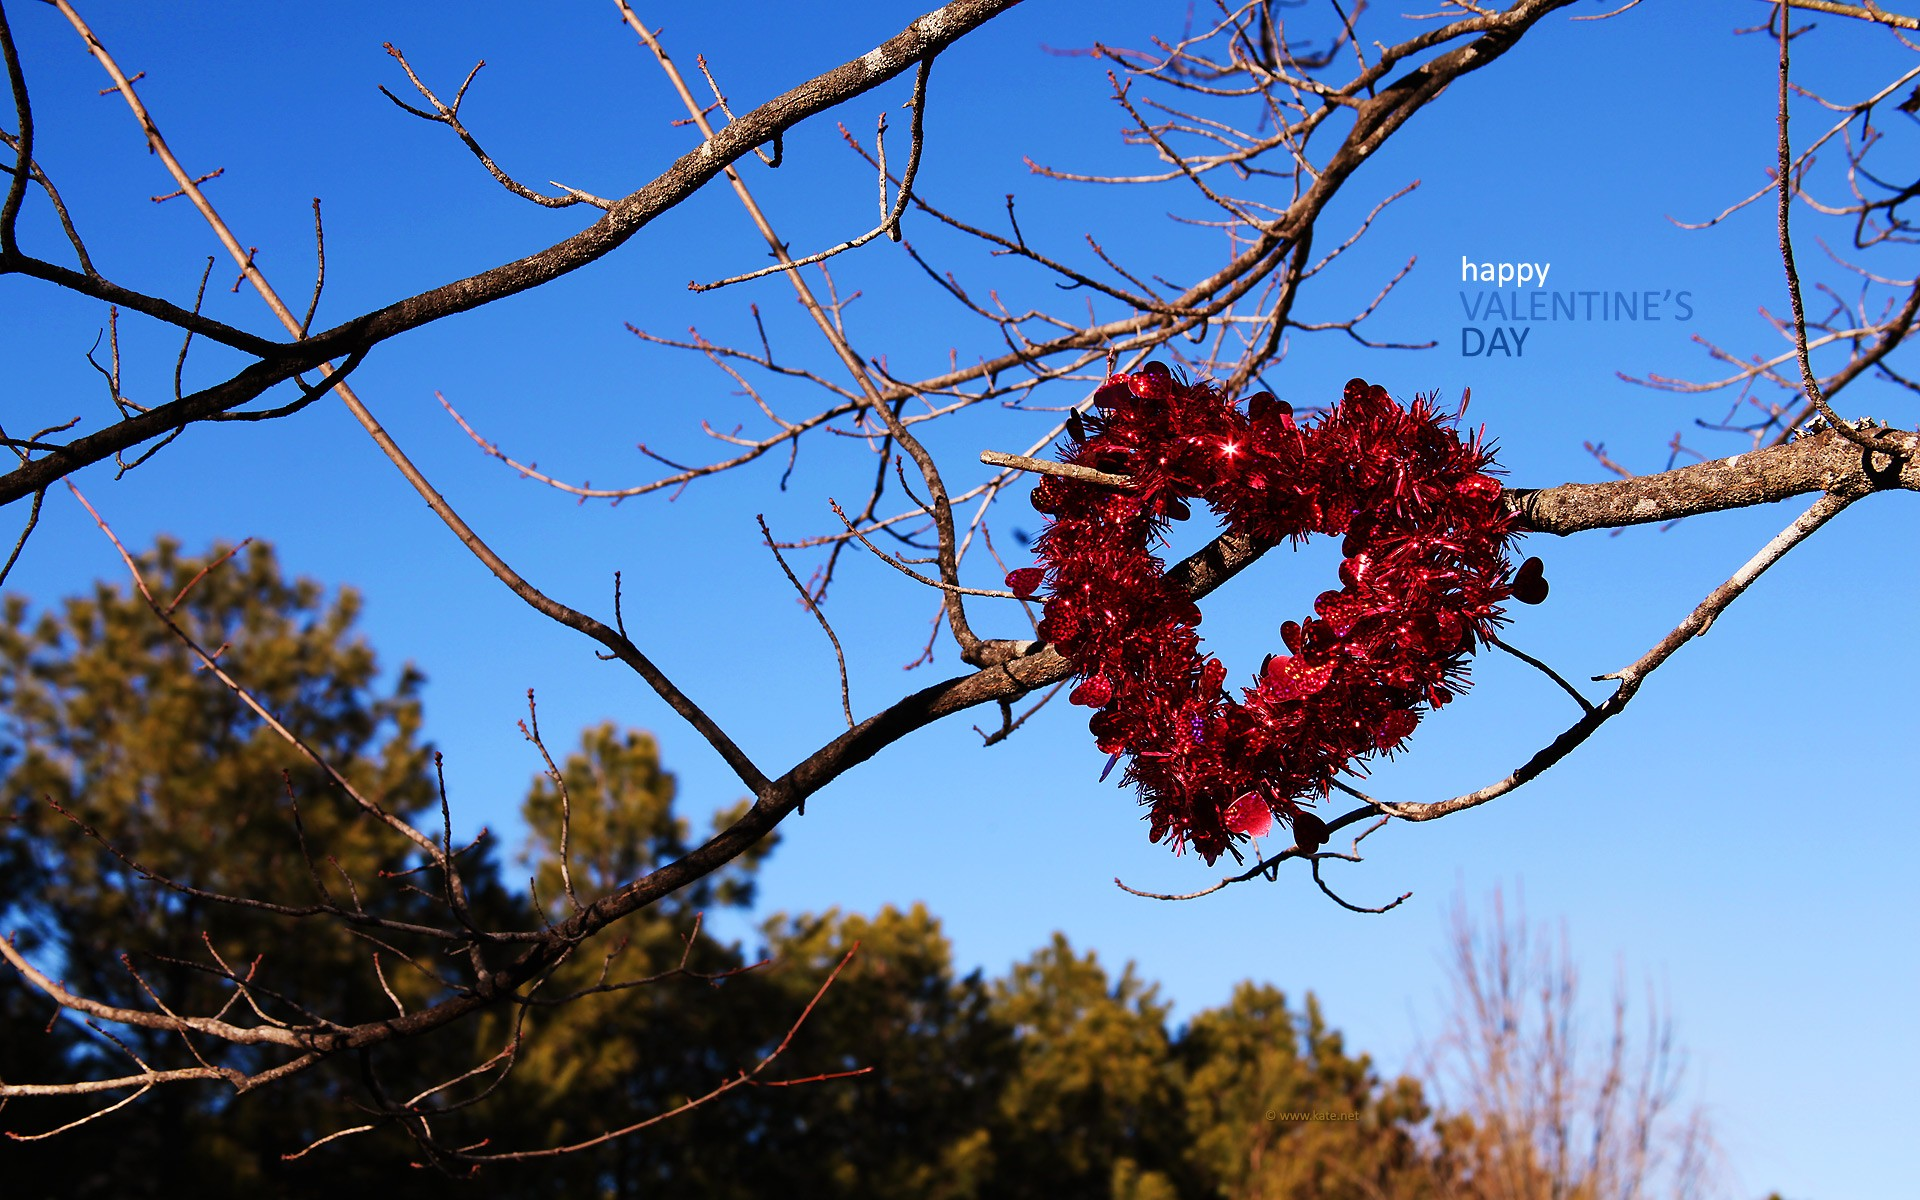 Happy Valentines Day Timeline Cover High Resolution Images 1920x1200